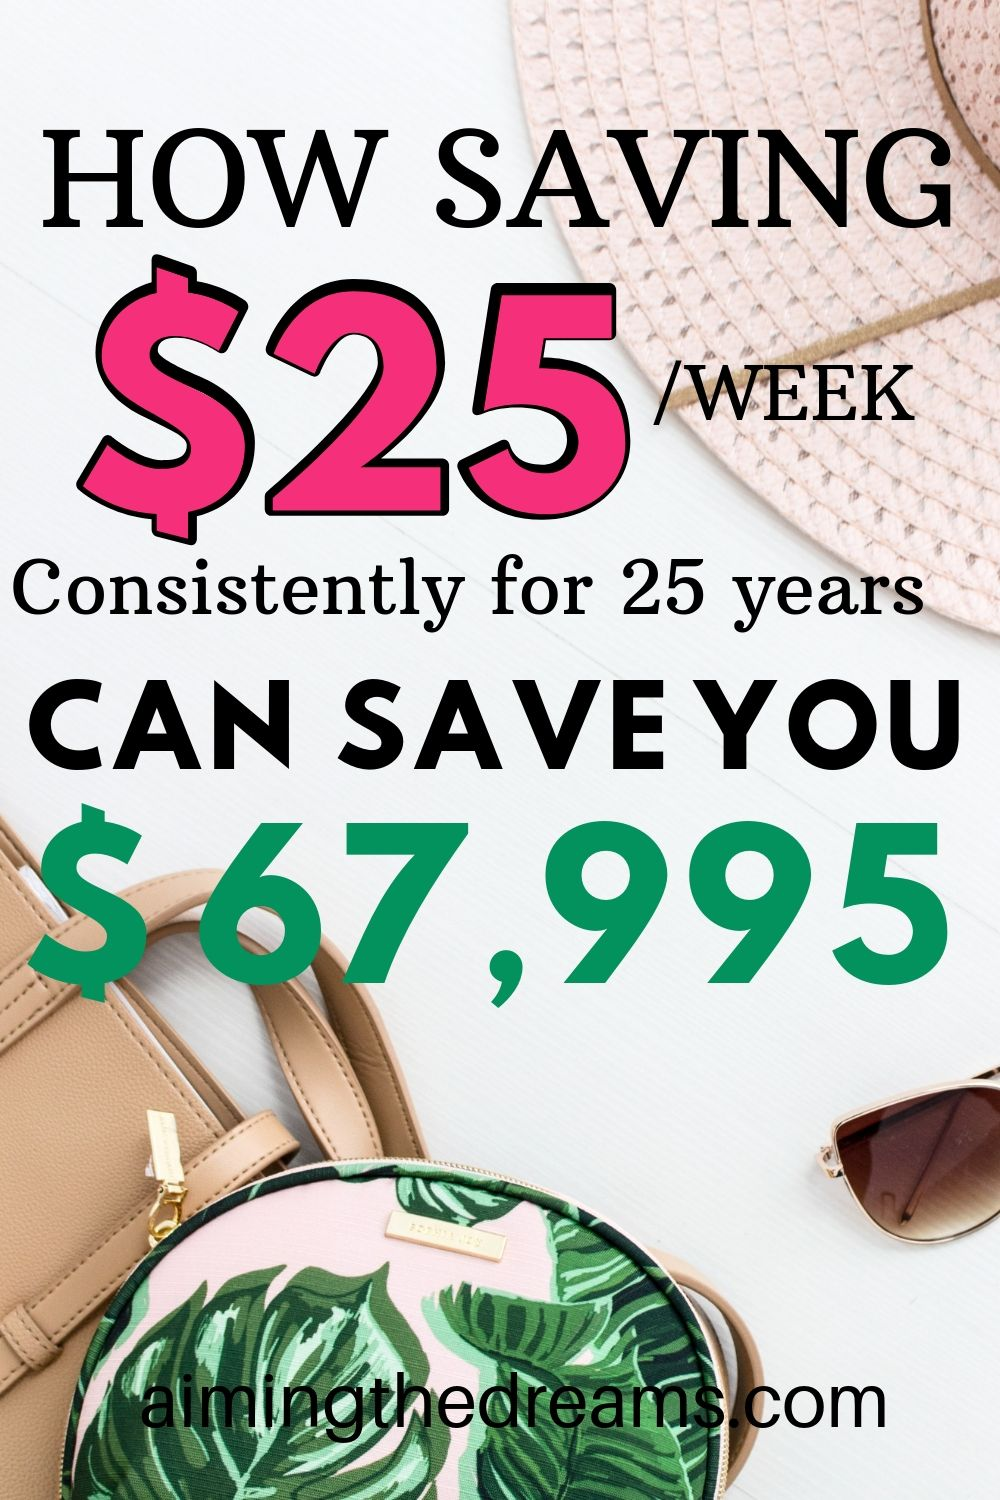 How saving $25 each week can save you lot of money in few years